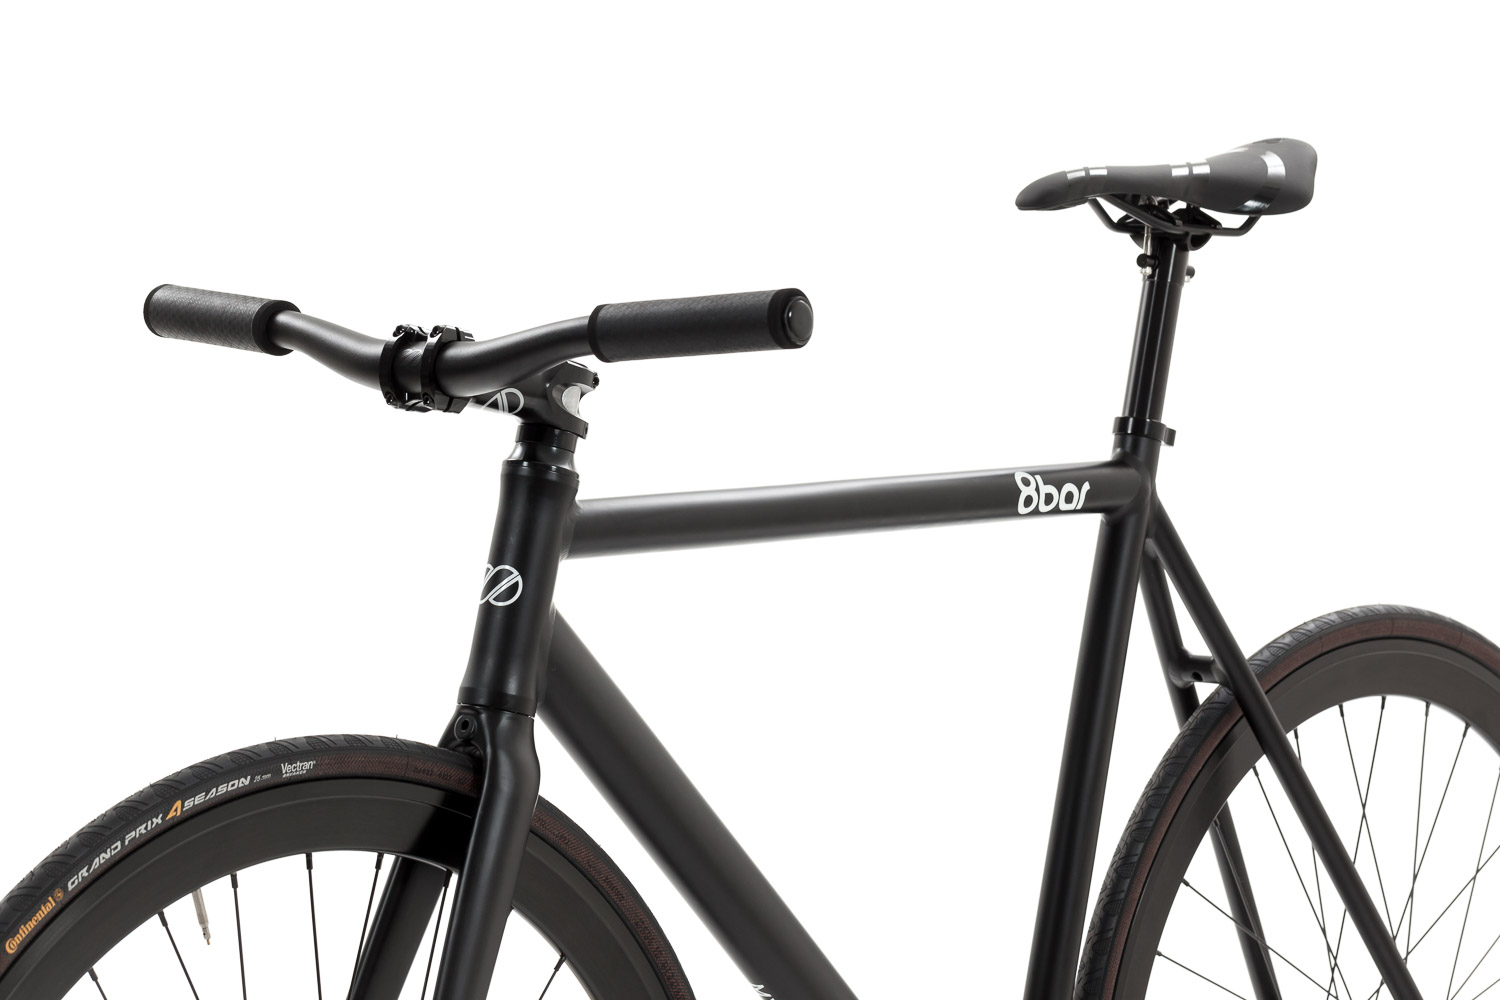 8bar-fhain-pro-black-riser-fixie-fixed-gear-2